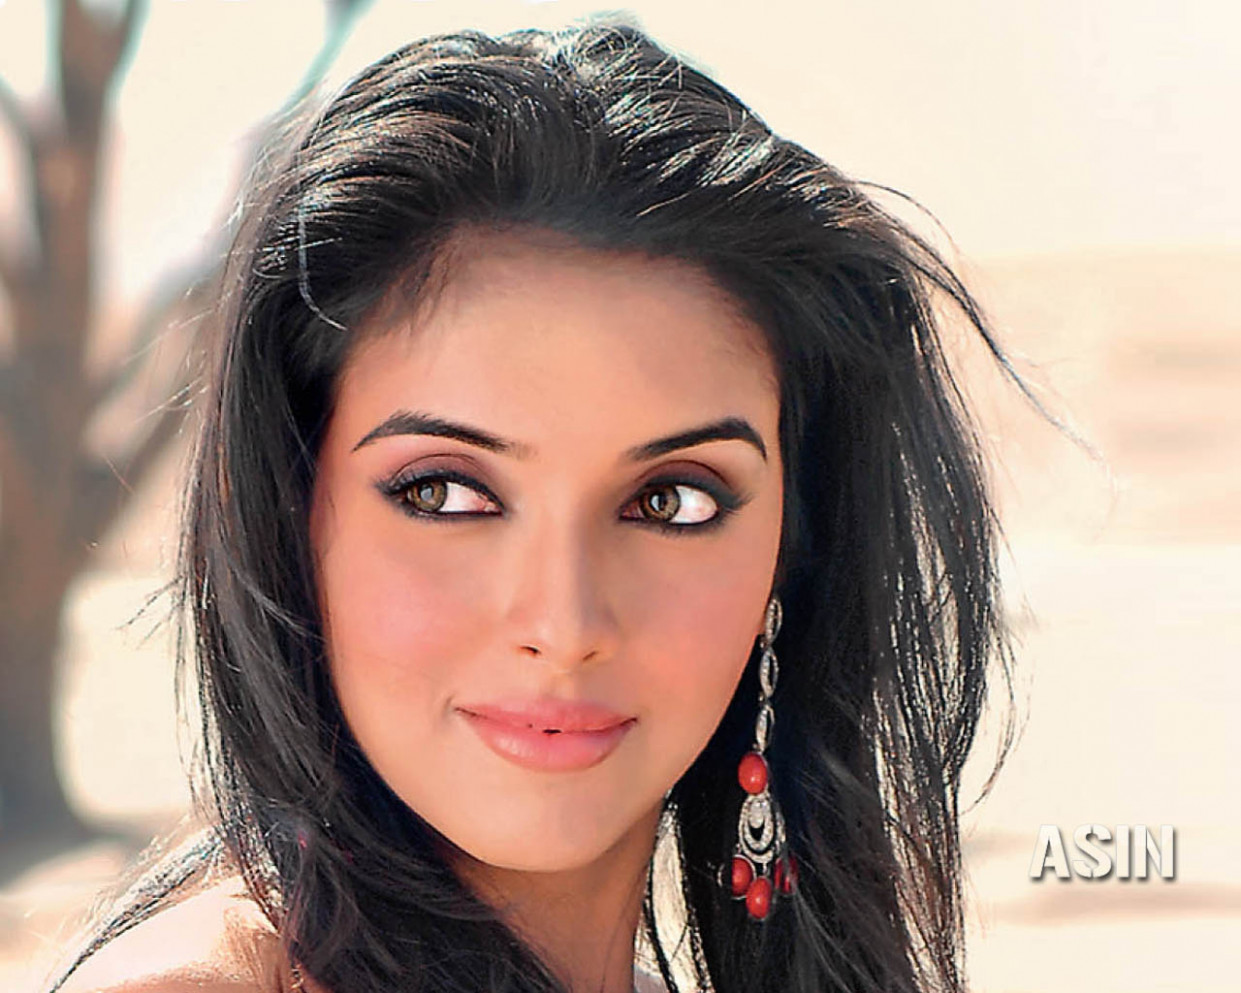 bollywood: Asin Wallpapers - Asin Pictures - Asin Photo ...